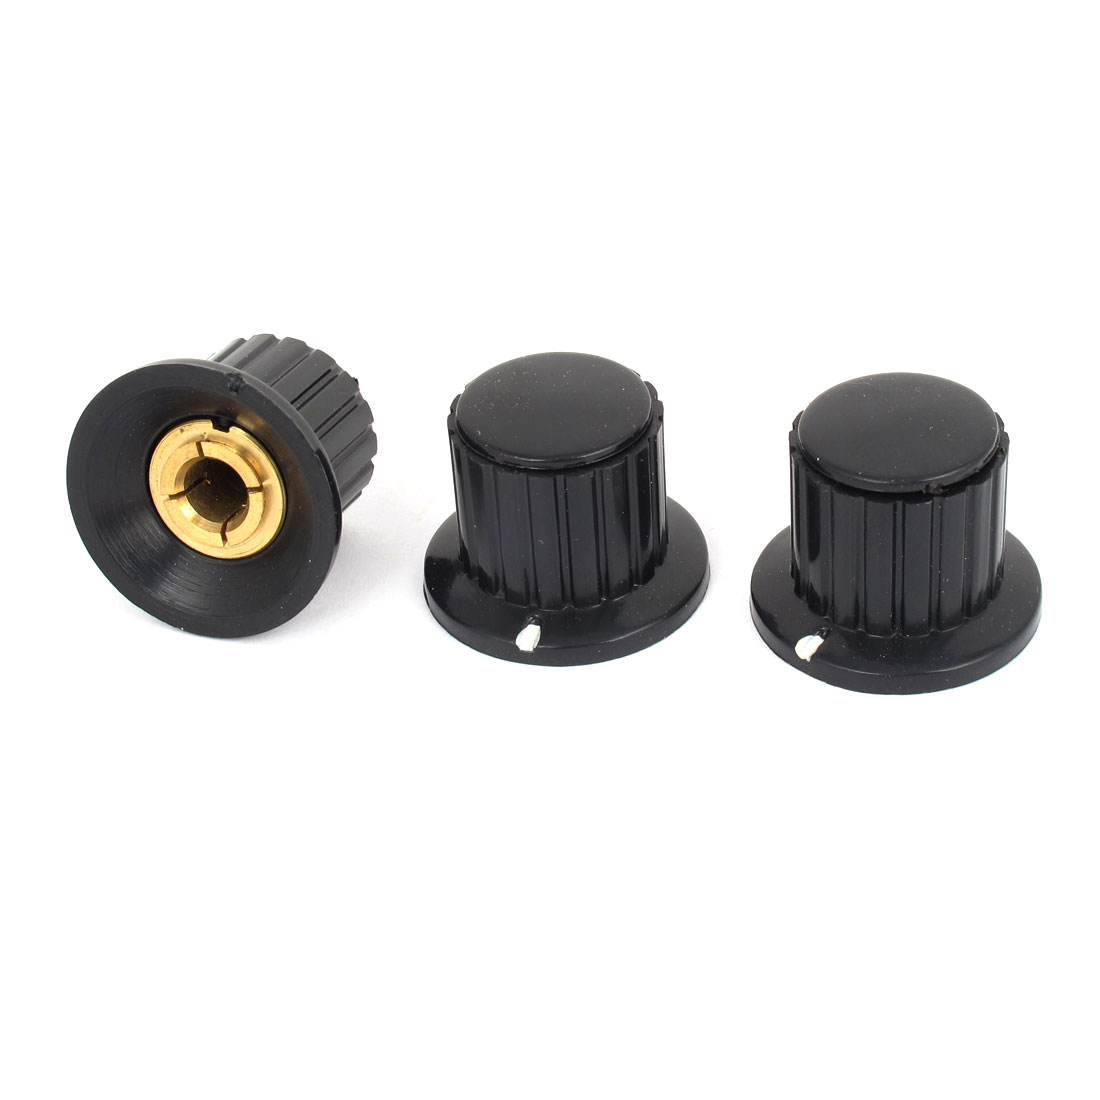 Black 19mm Top Dia 6mm Shaft Potentiometer Volume Control Knobs 3 Pcs